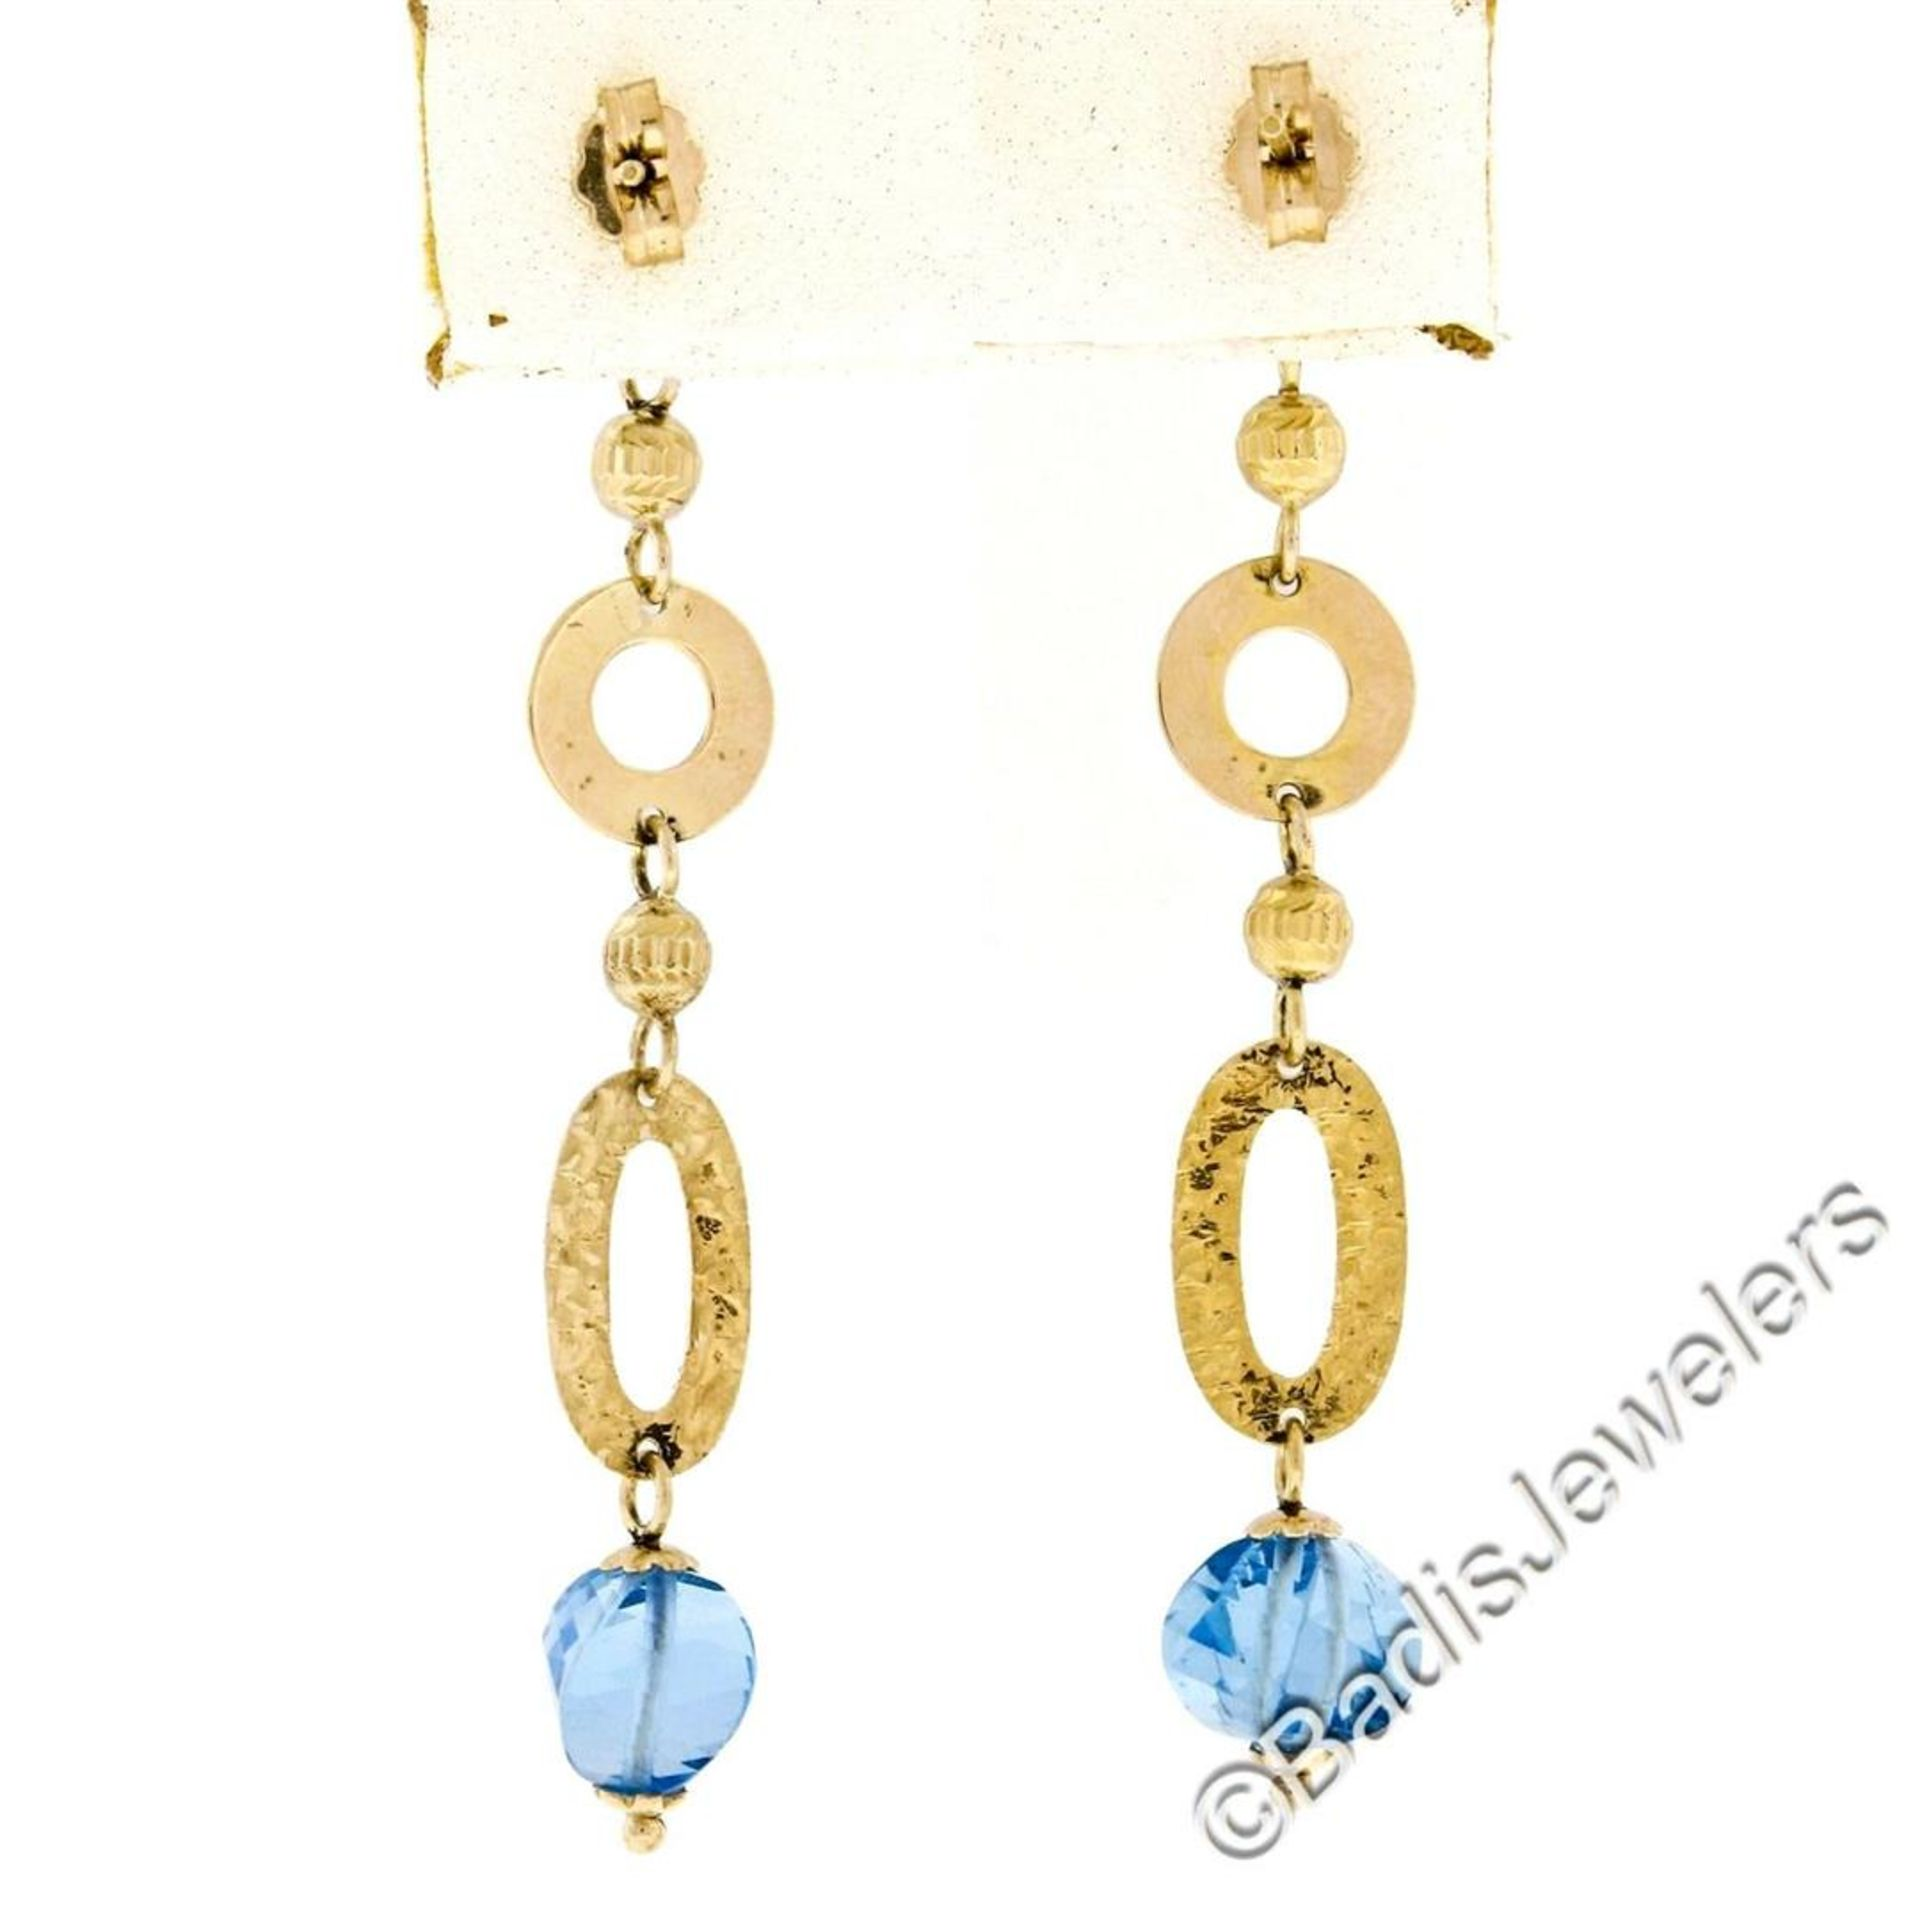 14kt Yellow Gold Briolette Cut Blue Topaz Bead Long Textured Dangle Earrings - Image 5 of 6